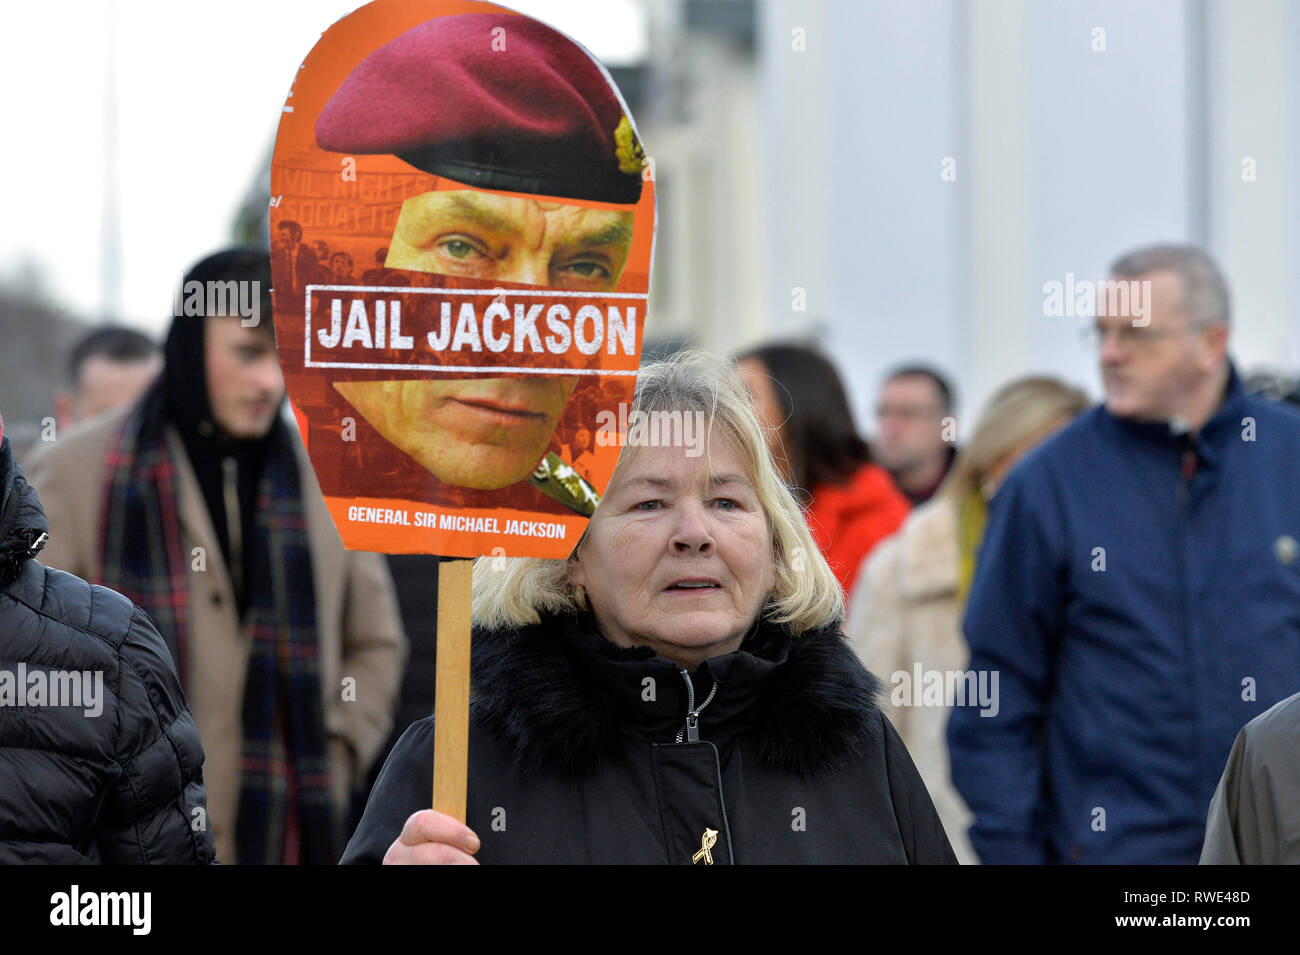 Linda Nash whose brother William was killed on Bloody Sunday 1972 carries a poster, calling for the jailing of General Sir Michael Jackson, at the 47t - Stock Image